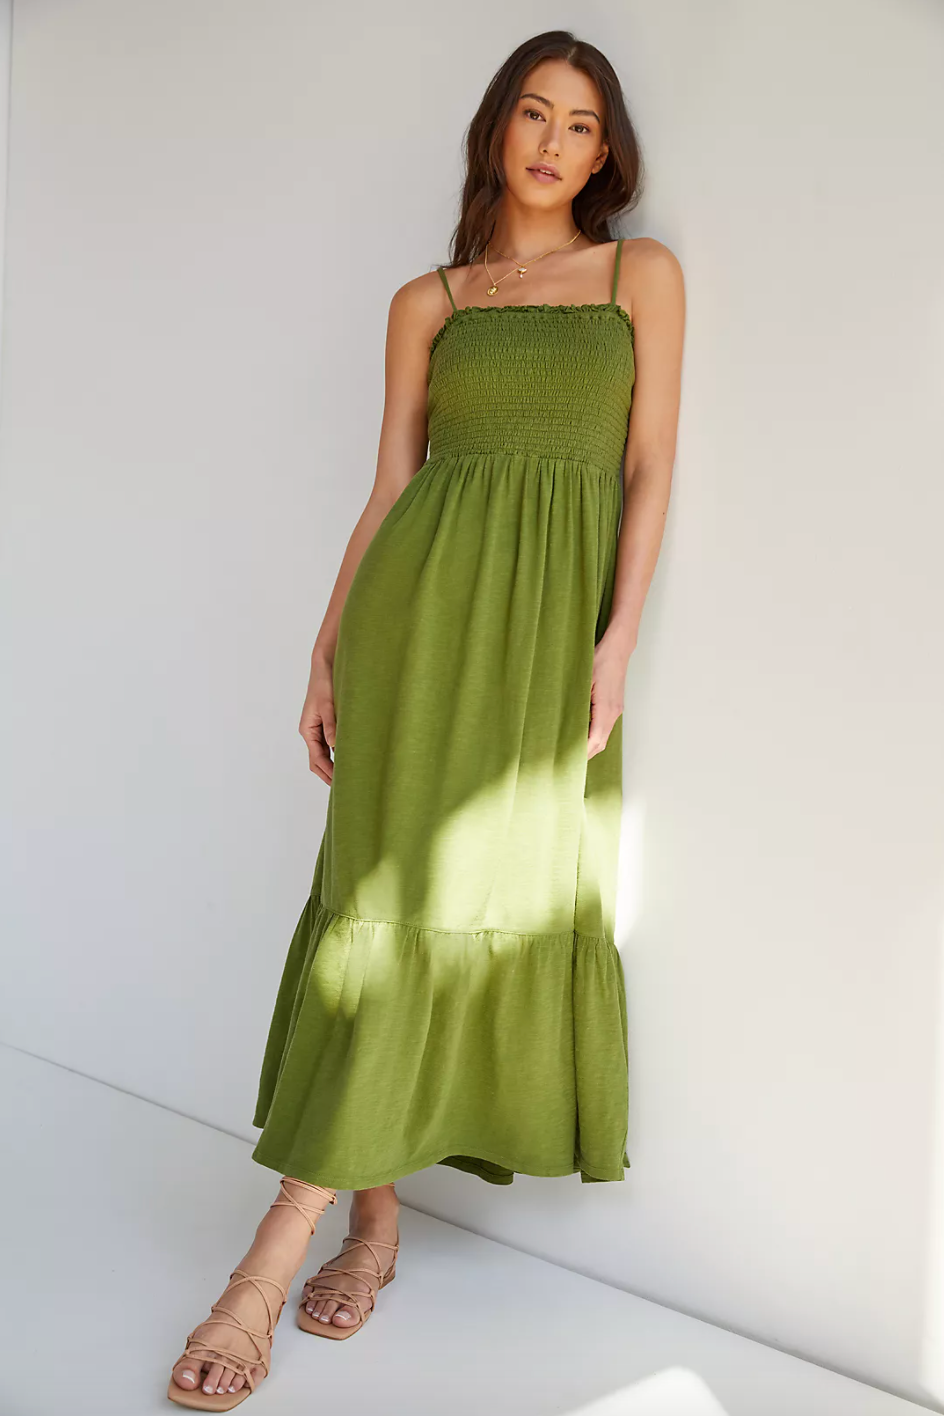 """<br><br><strong>Daily Practice</strong> Flounced Maxi Dress, $, available at <a href=""""https://go.skimresources.com/?id=30283X879131&url=https%3A%2F%2Fwww.anthropologie.com%2Fshop%2Fdaily-practice-by-anthropologie-flounced-maxi-dress"""" rel=""""nofollow noopener"""" target=""""_blank"""" data-ylk=""""slk:Anthropologie"""" class=""""link rapid-noclick-resp"""">Anthropologie</a>"""